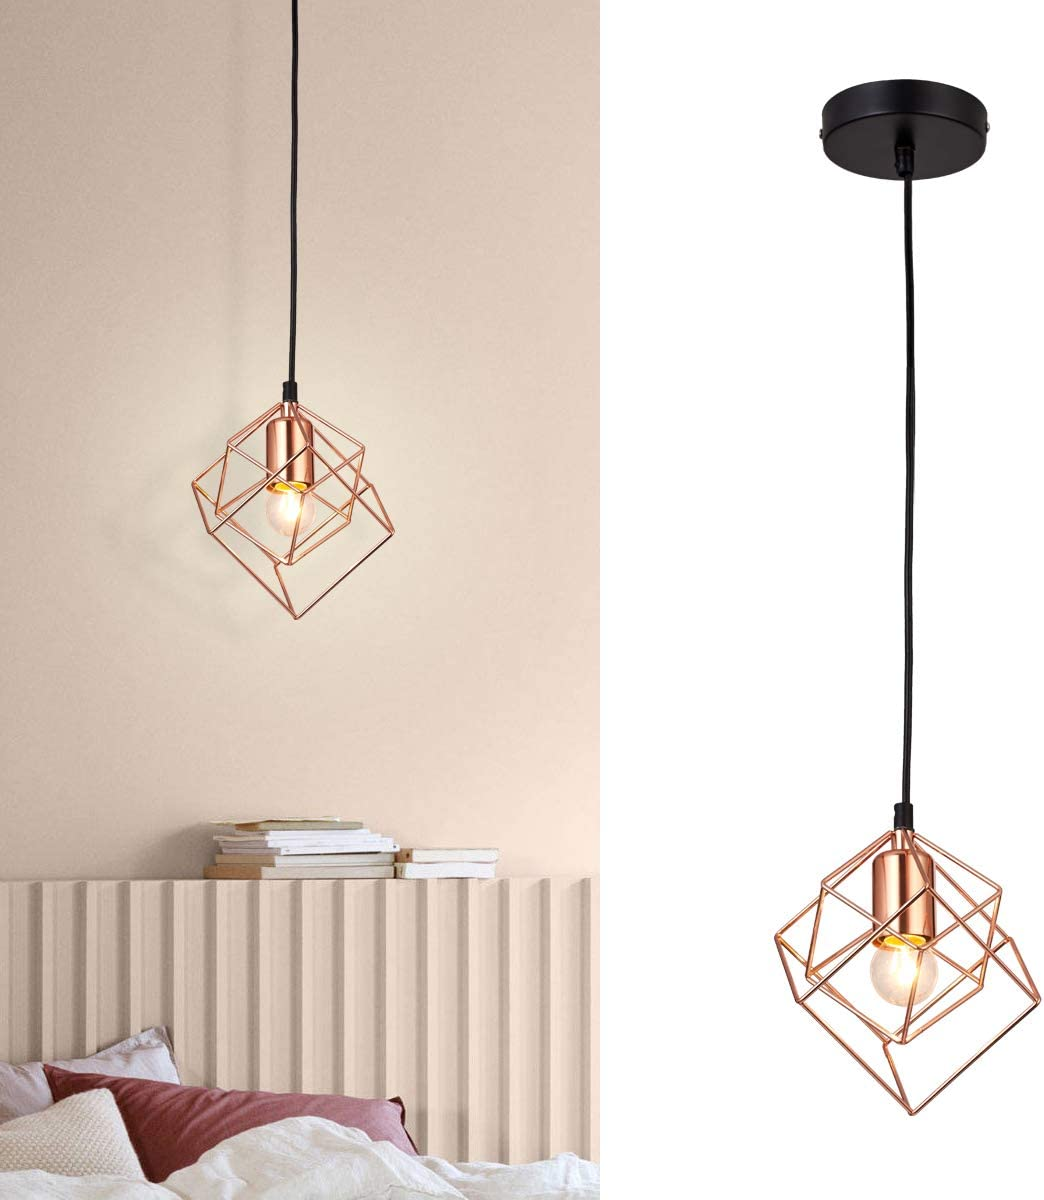 SHUNG YU Pendant Light, Diamond Industrial Basket Cage Hanging Ceiling Lamp, Rose Gold Lighting Fixture and Decoration for Kitchen Island Restaurant Kitchen Sink